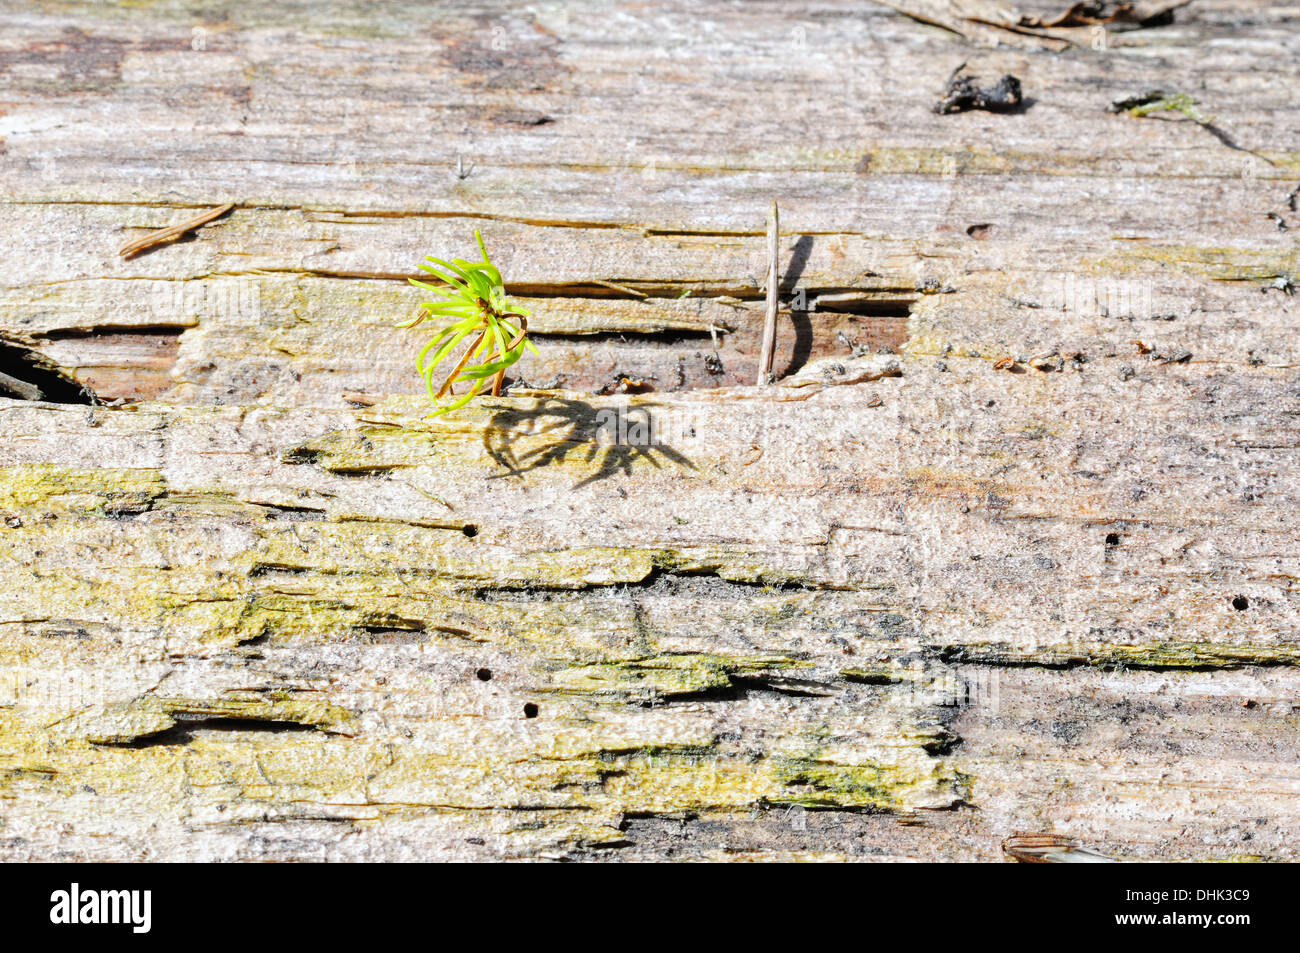 Seedling of a spruce in old wood Stock Photo